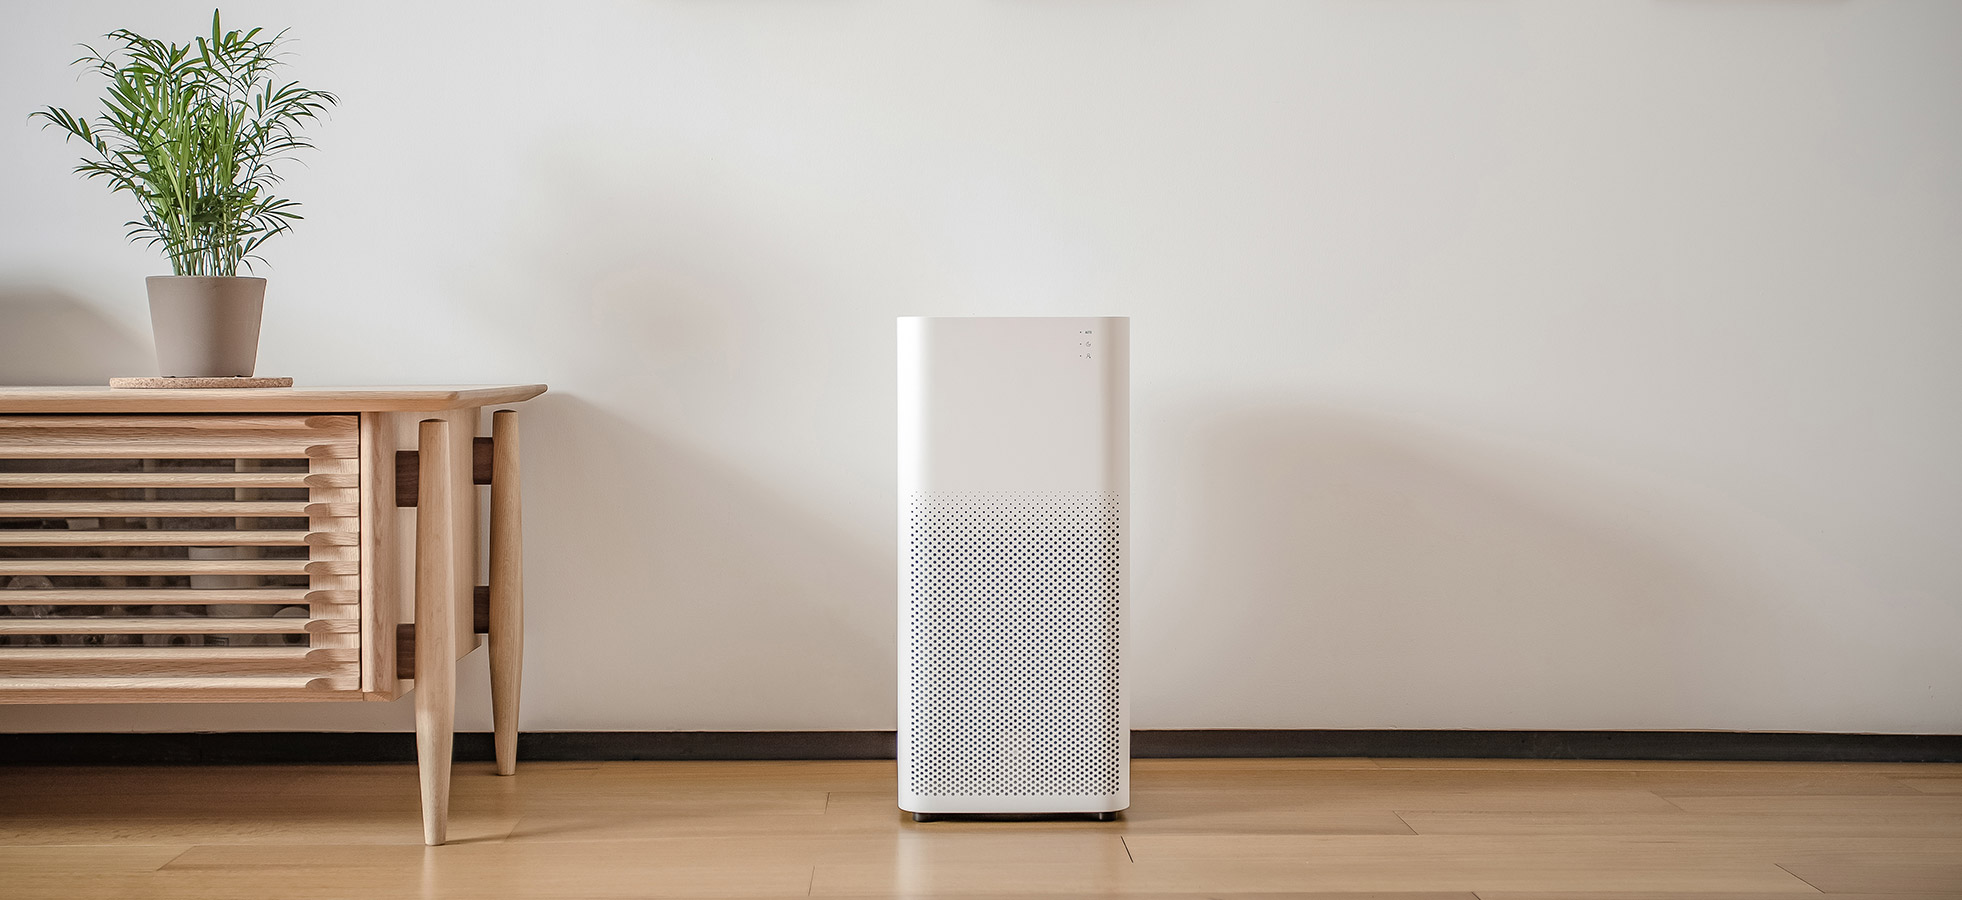 Mi Air Purifier 2S EU